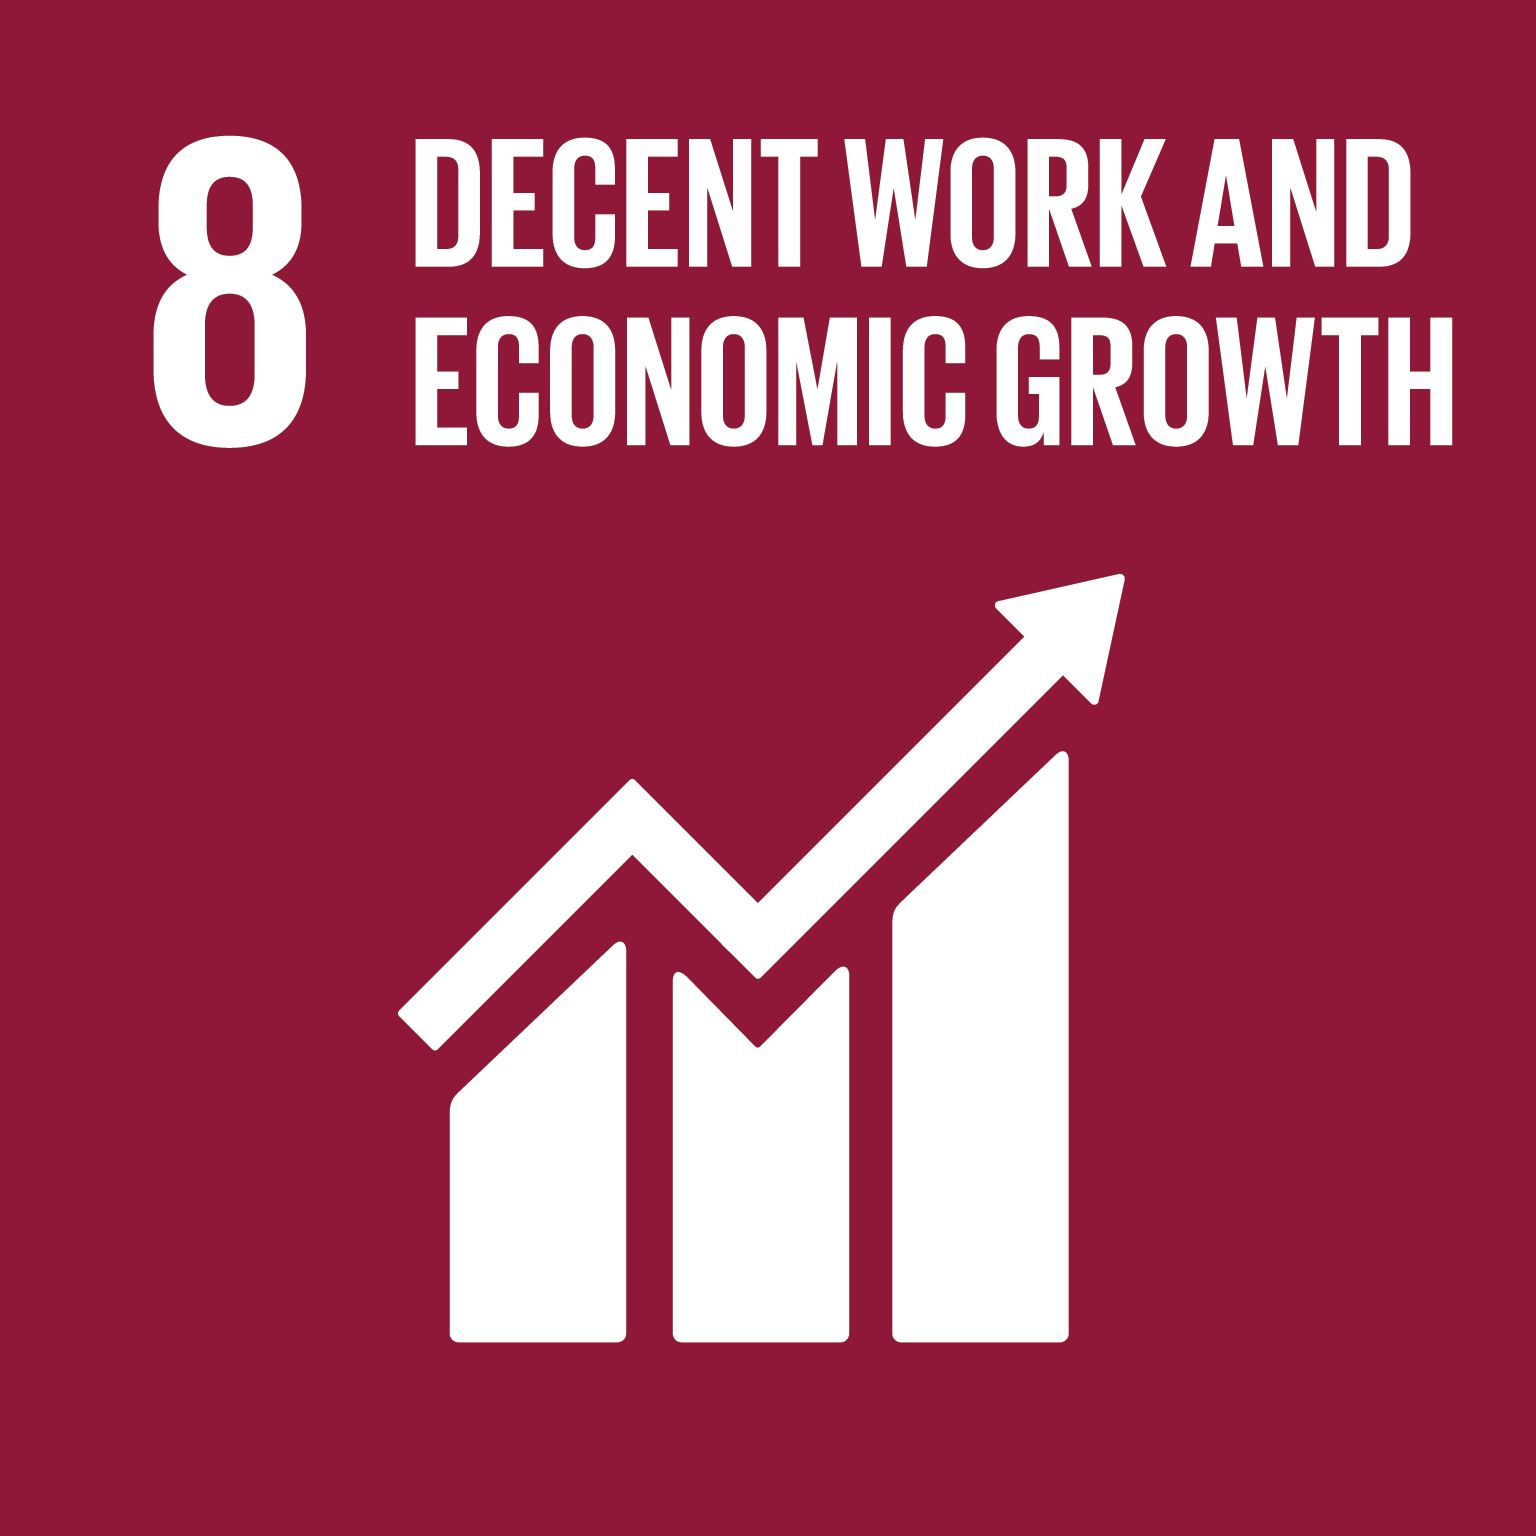 Decent work and economic growth goal 8